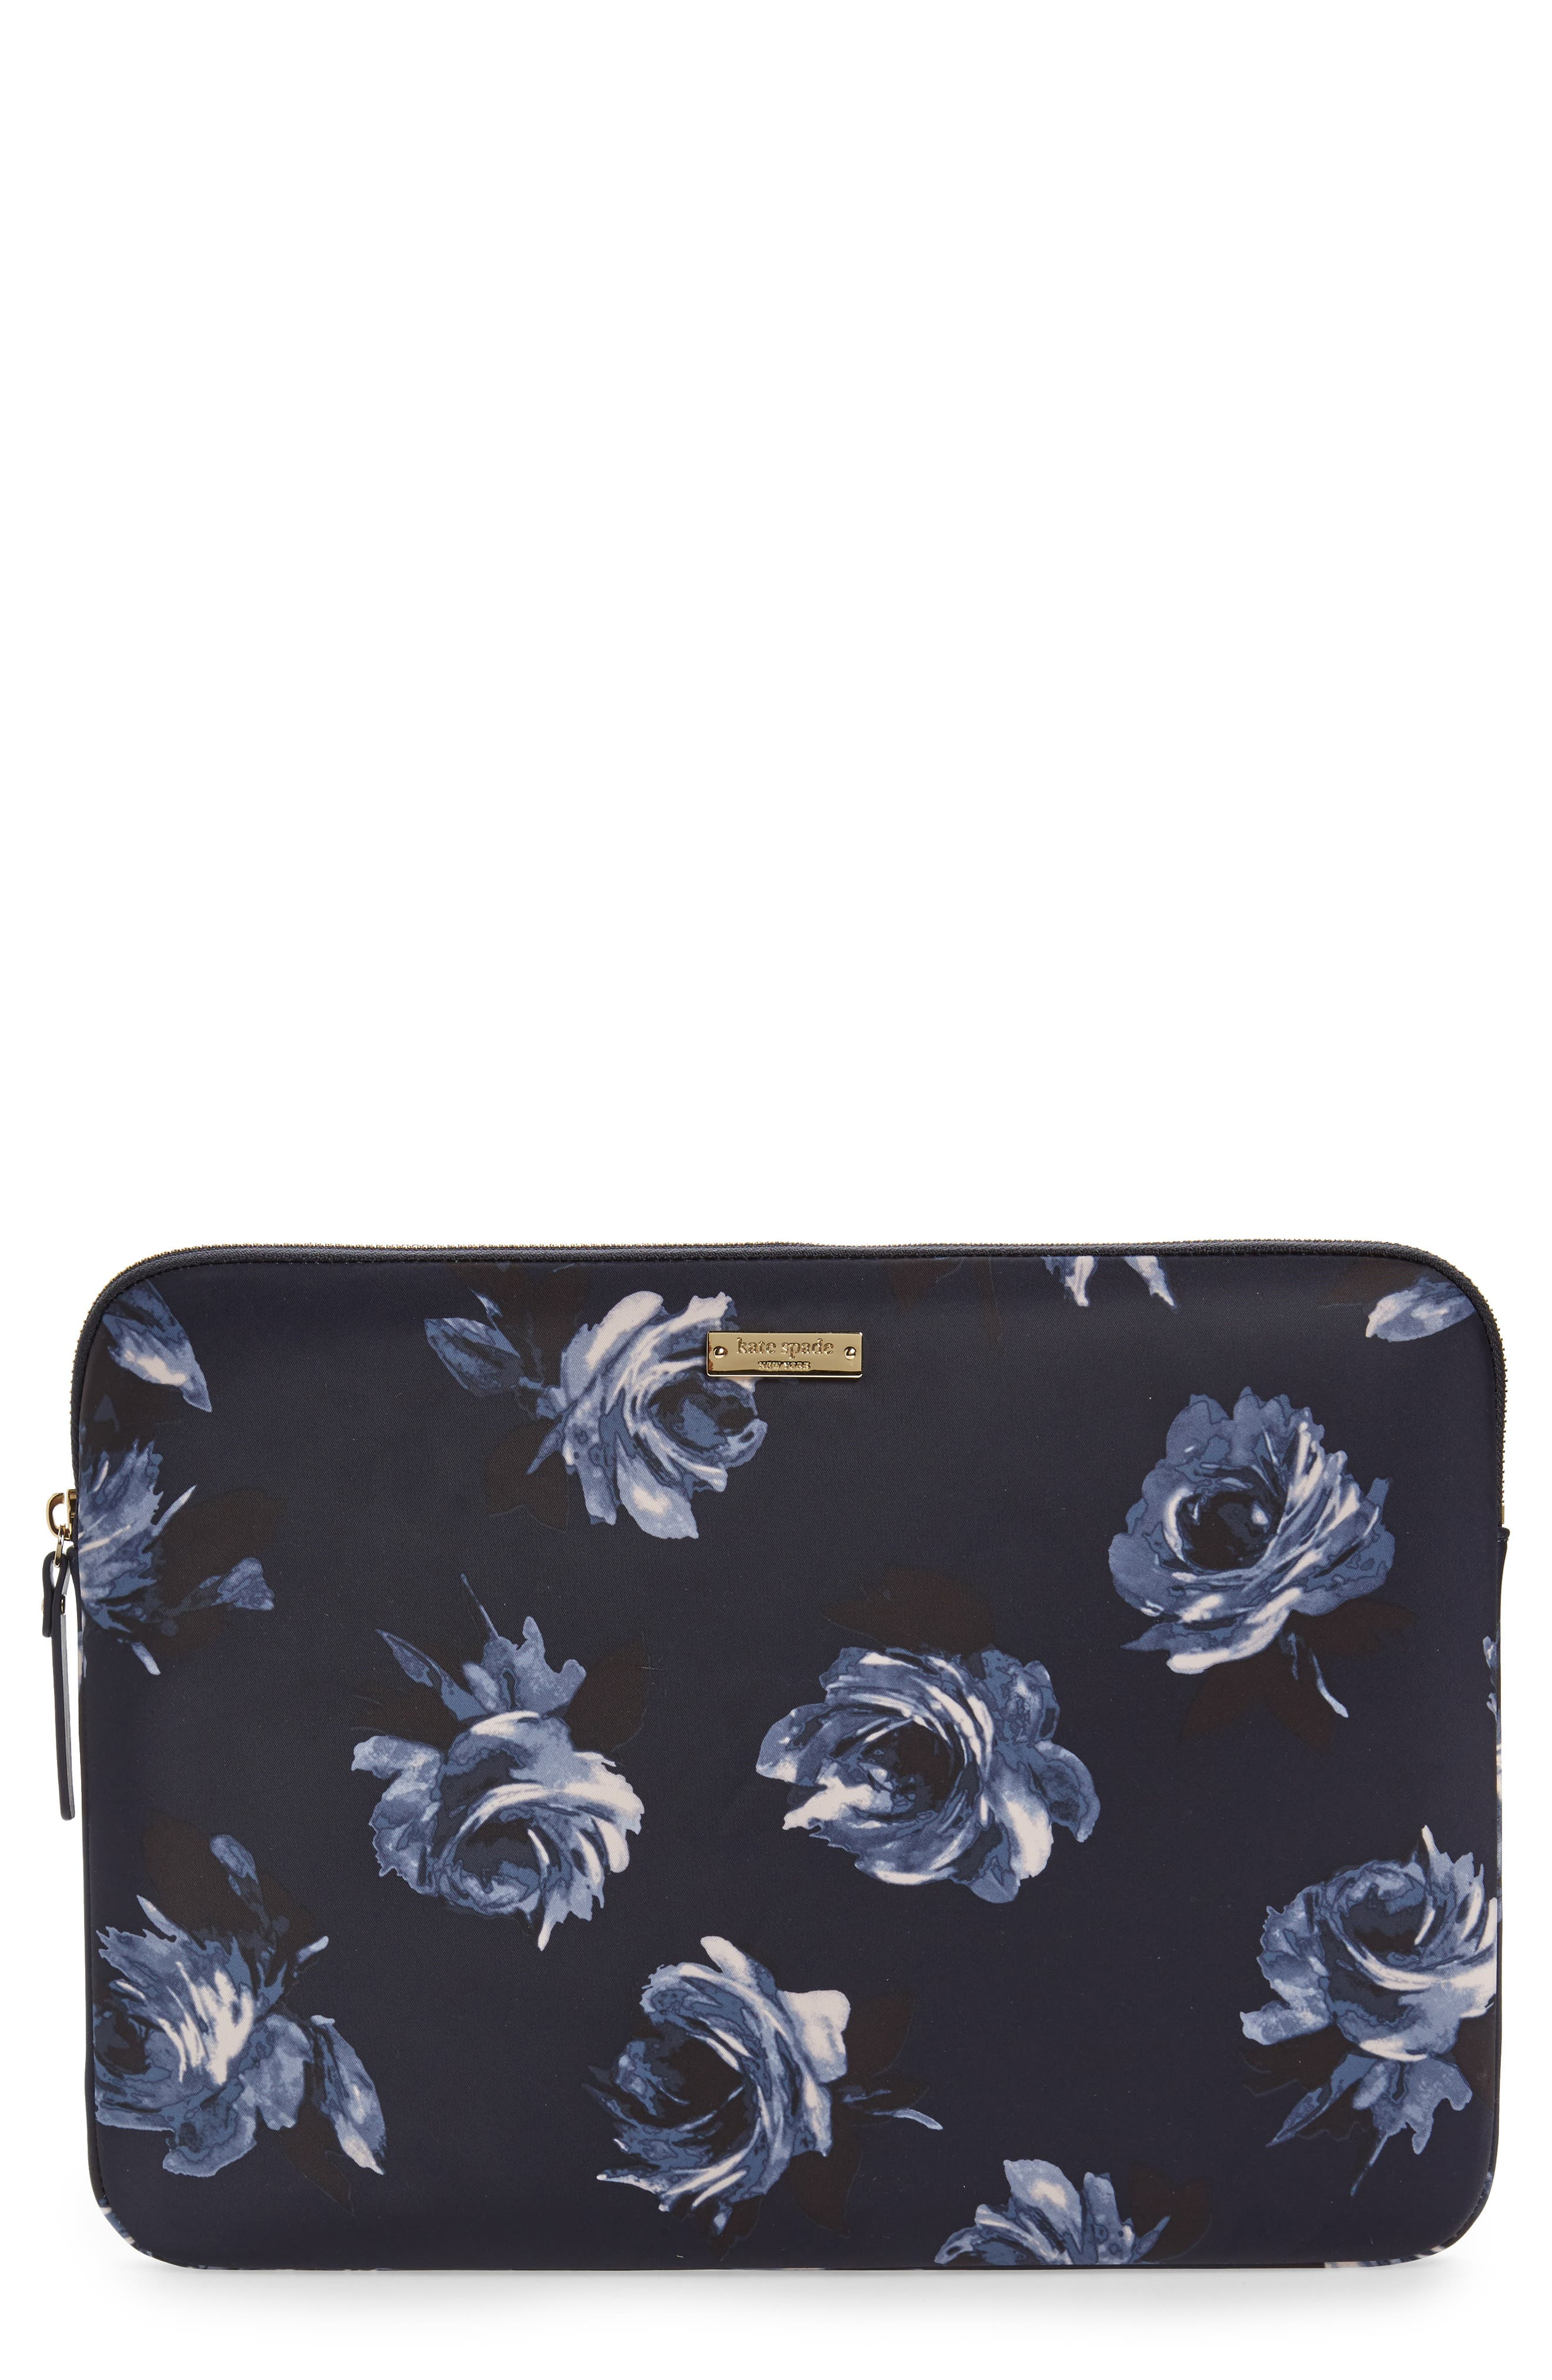 night rose 13-Inch laptop sleeve,                         Main,                         color, Multi